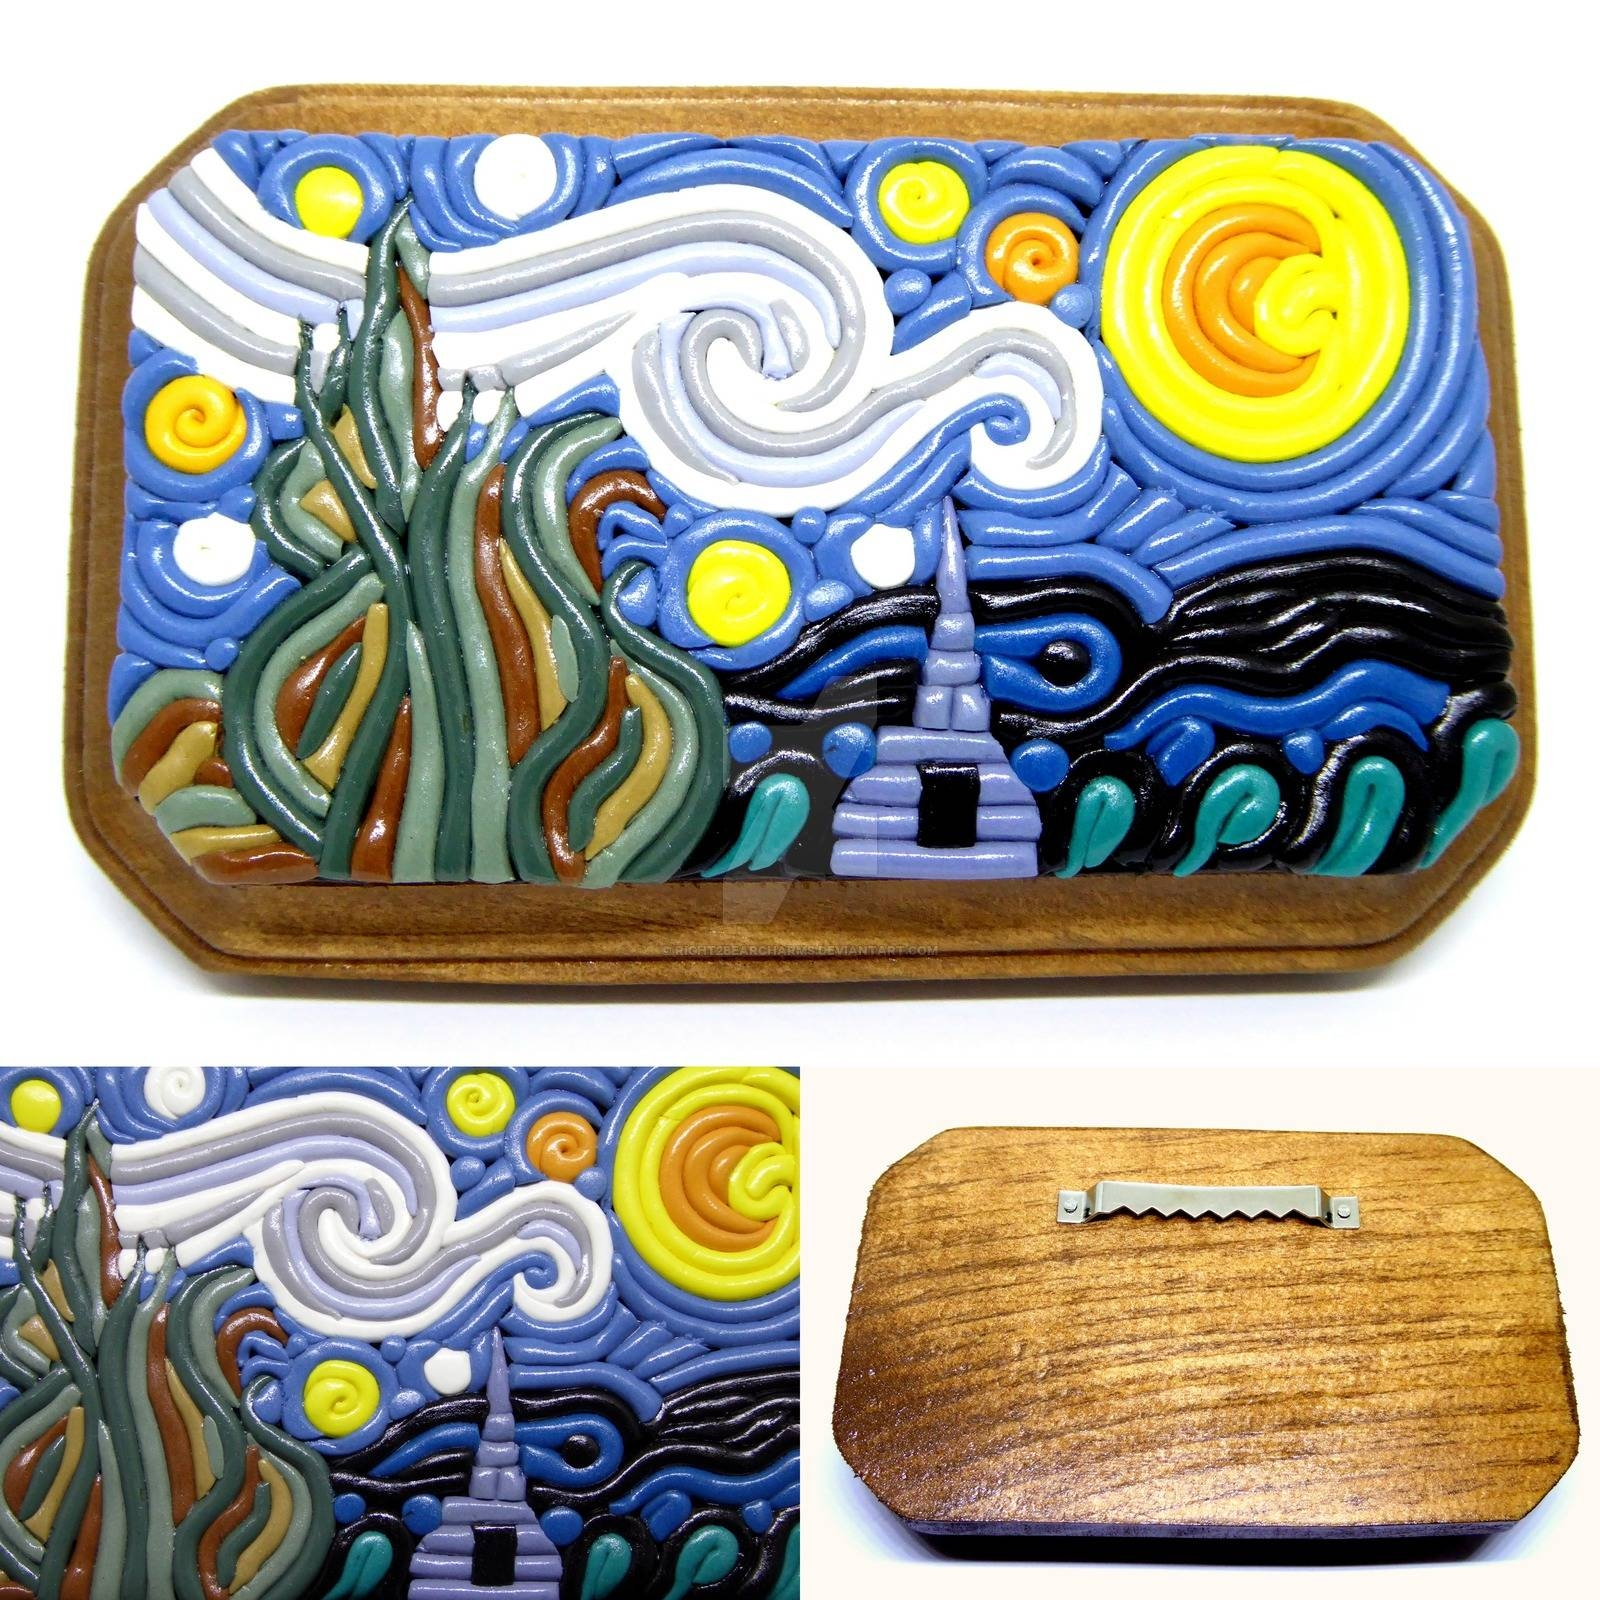 The Starry Night' Polymer Clay Wall Artright2Bearcharms On Within Current Polymer Clay Wall Art (View 19 of 20)